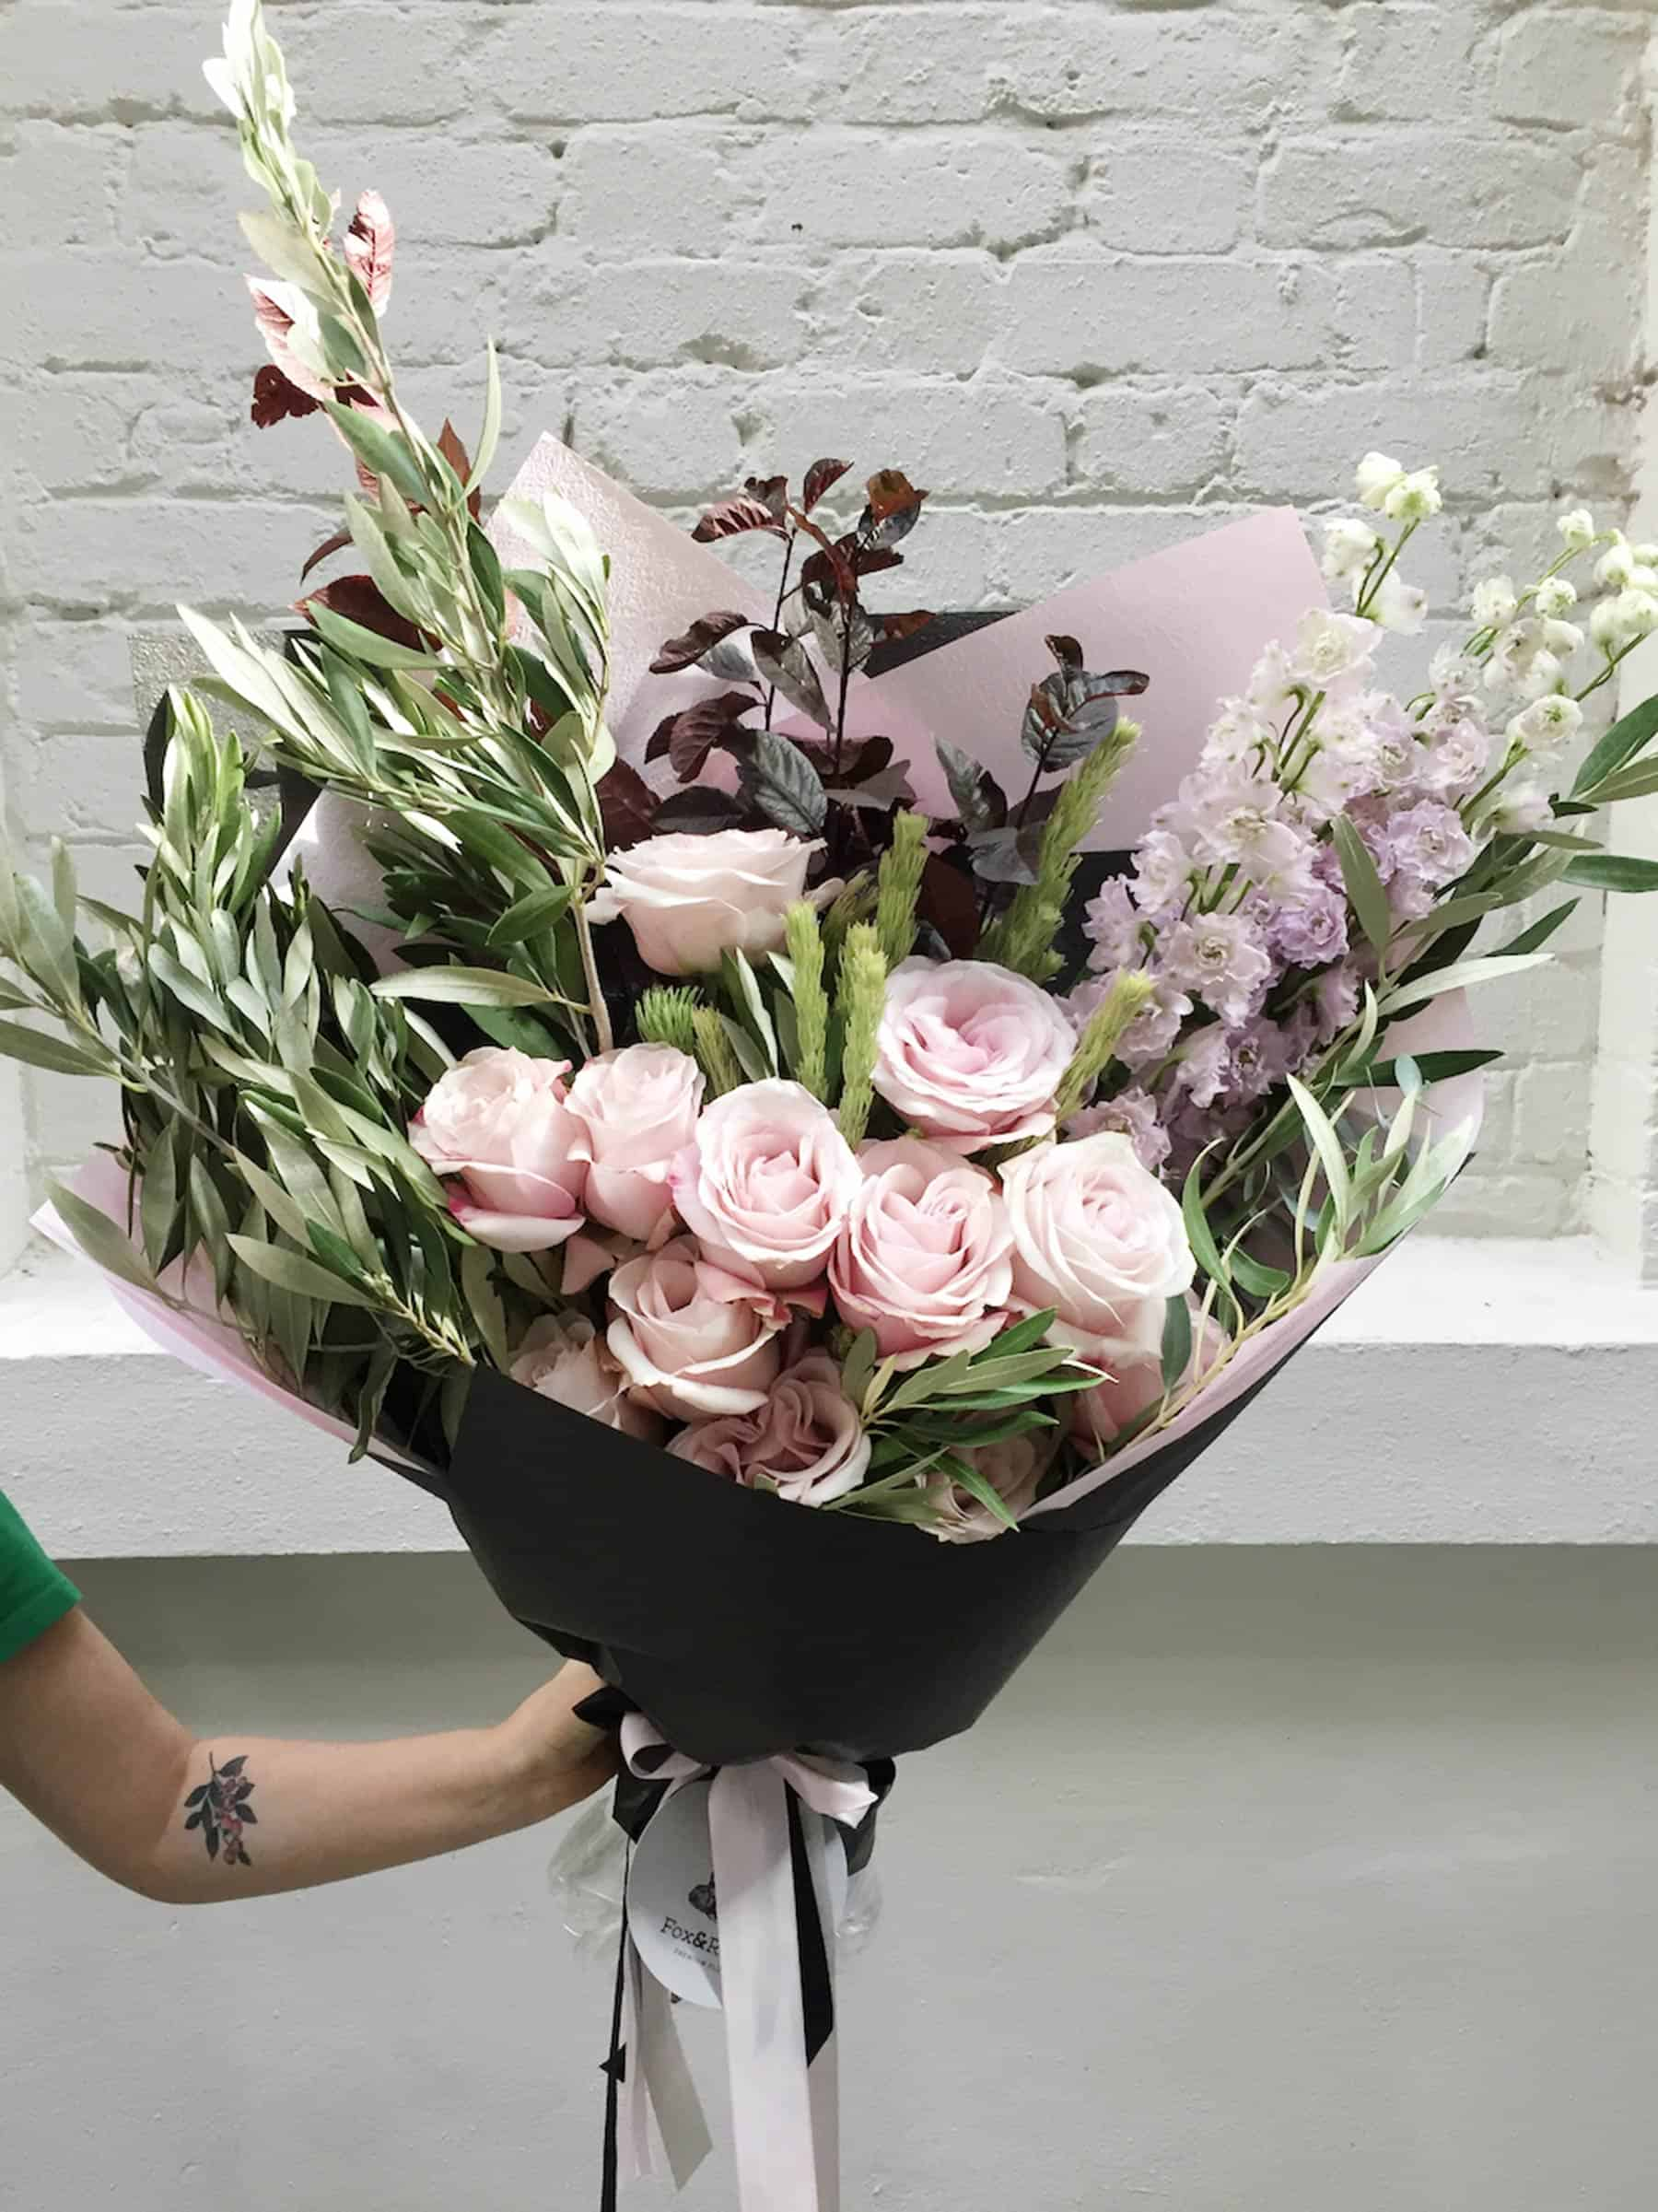 pastel rose bouquet for Valentine's Day by Perth Florist Fox & Rabbit